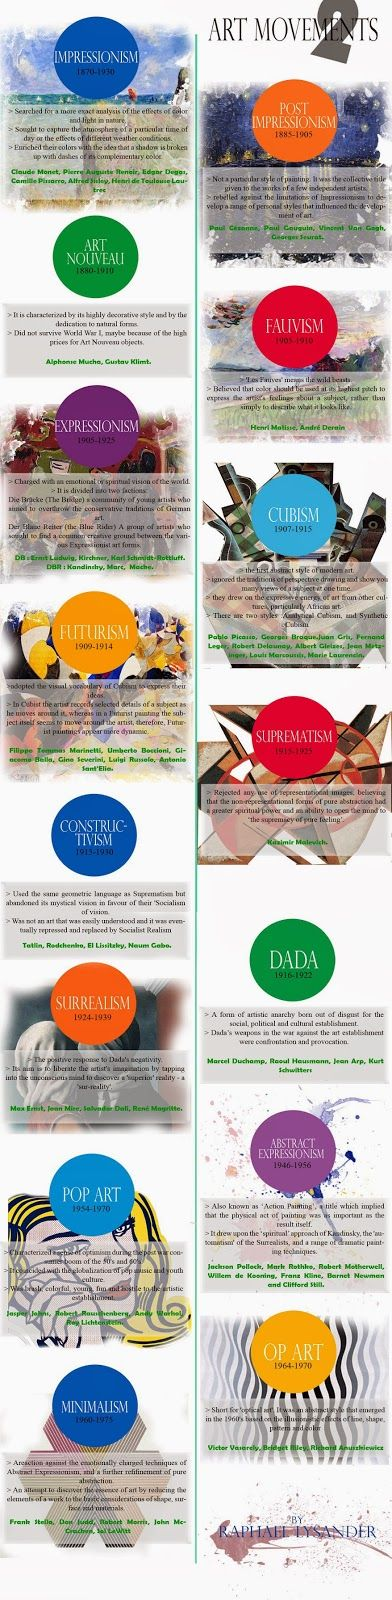 art movements infographic 2 by Raphael Lysander